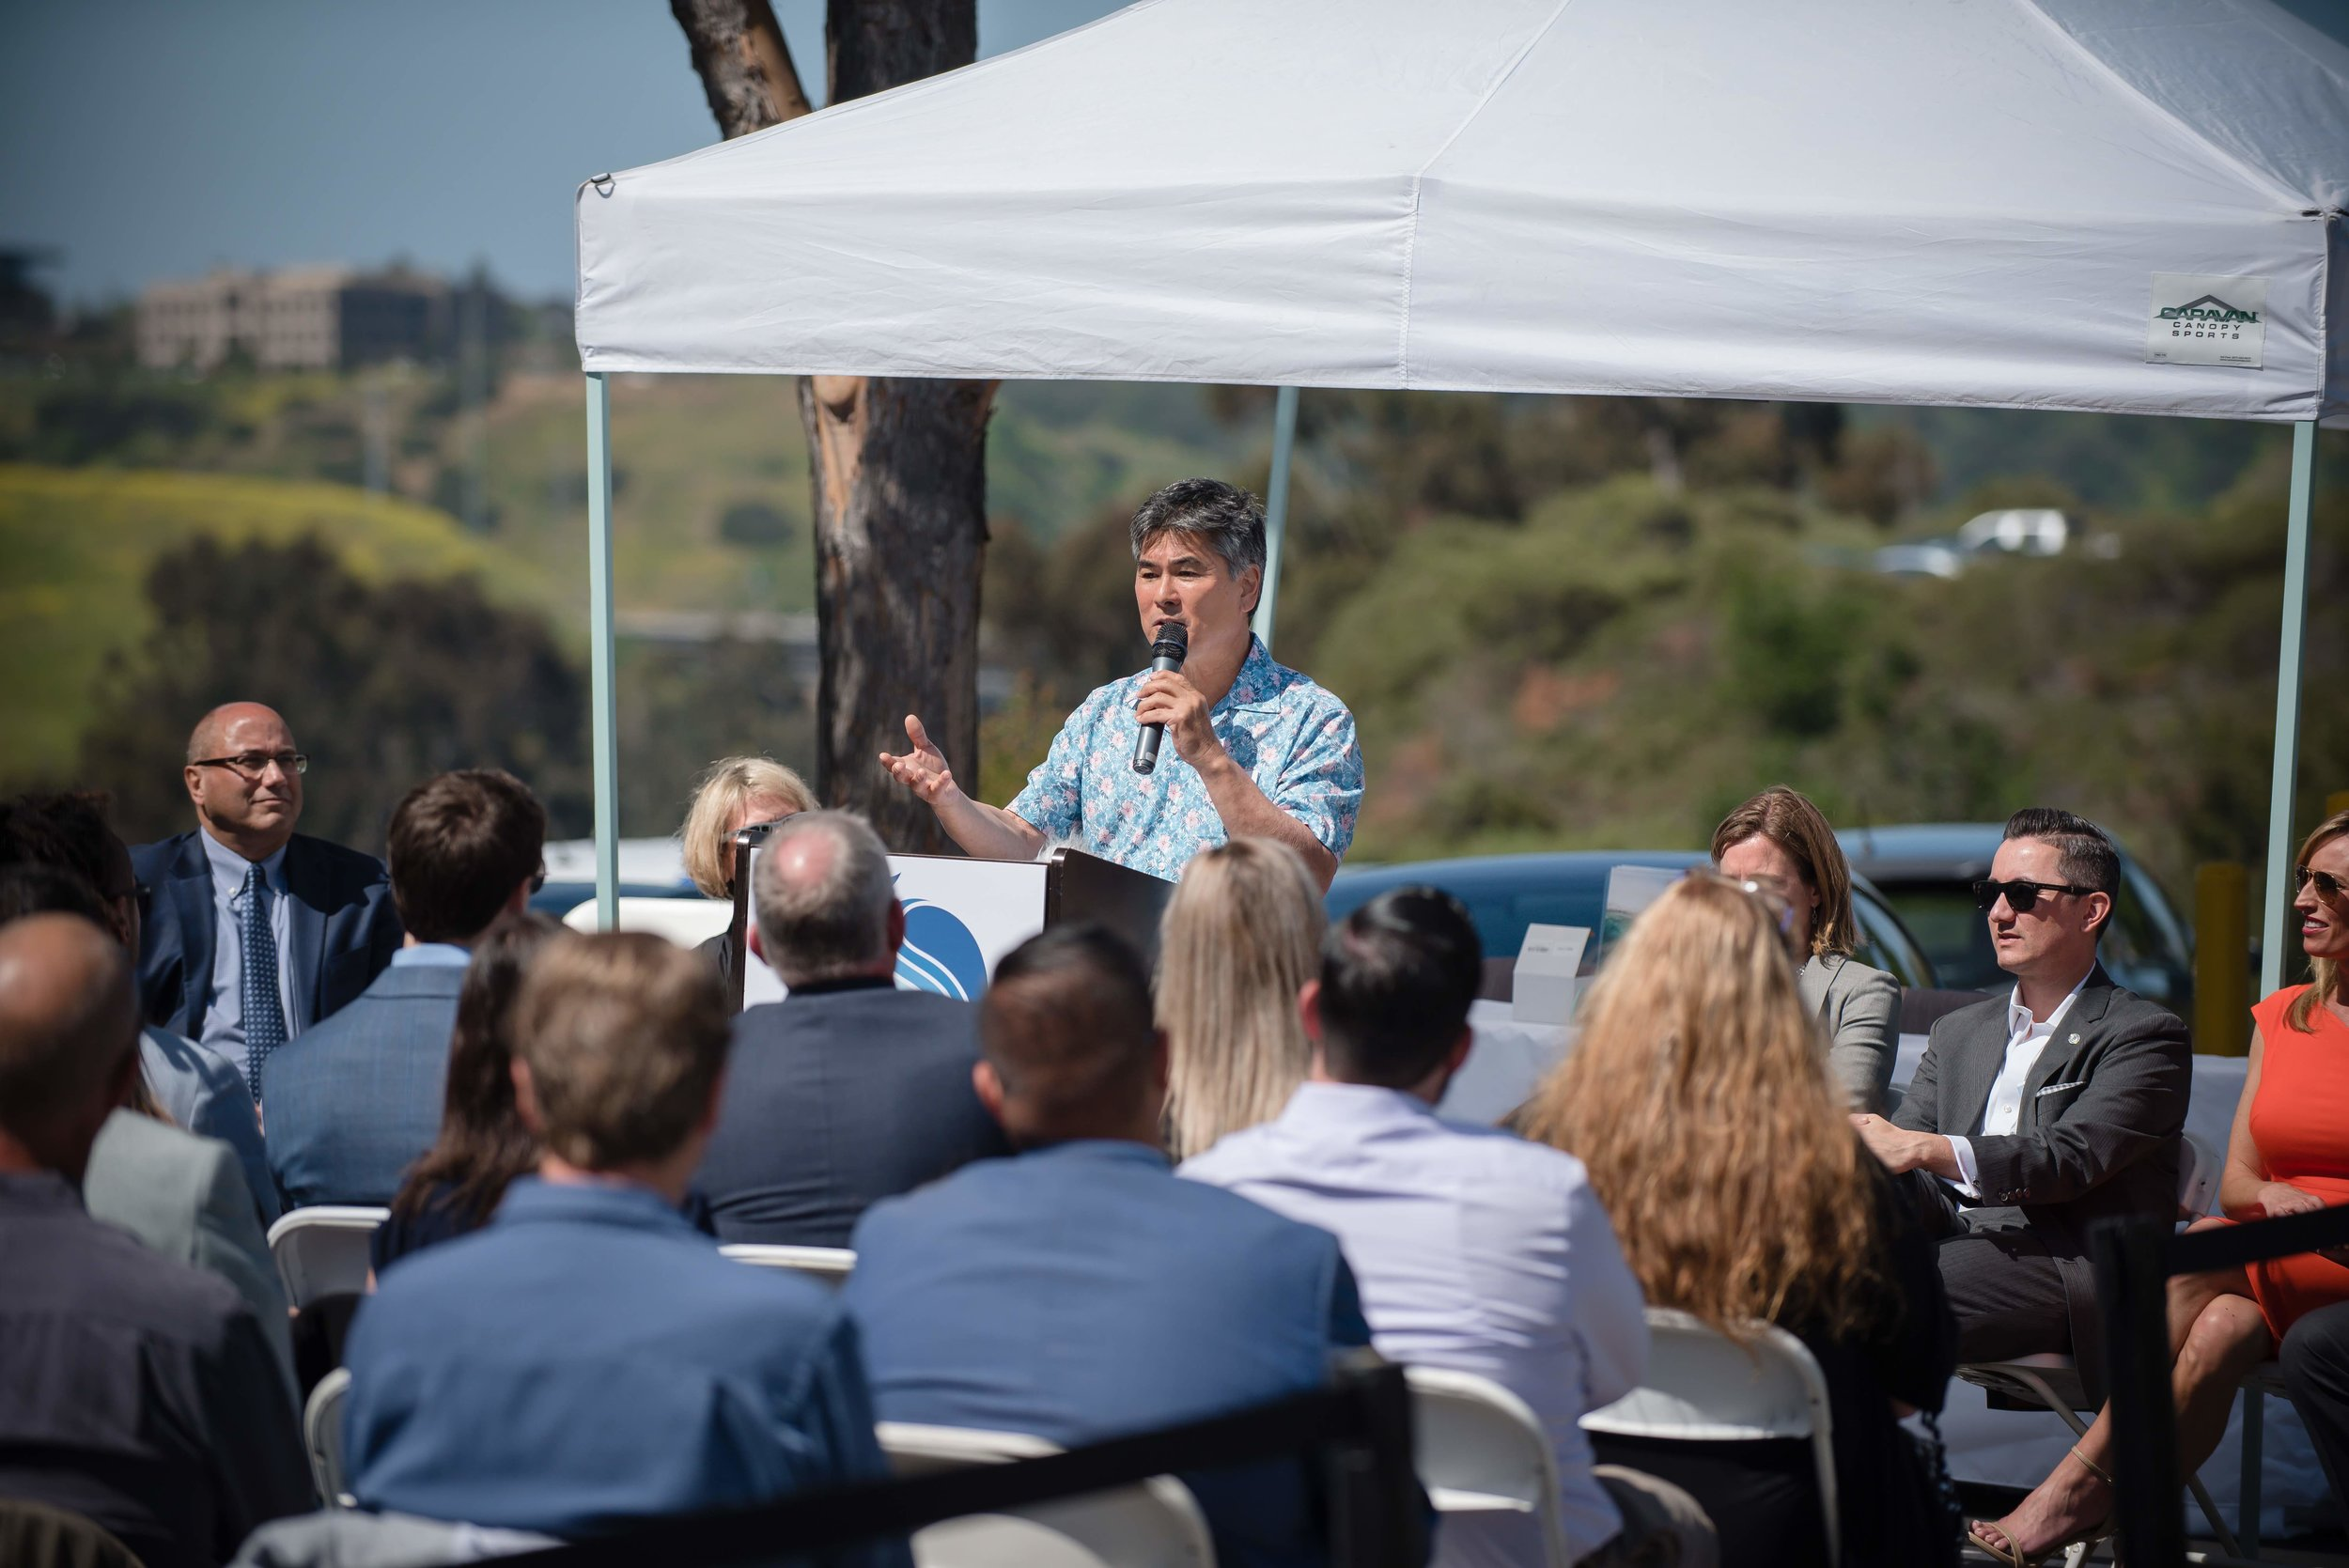 Celebrity Chef Roy Yamaguchi addressing San Diego officials and the media at the BlueNalu Ribbon Cutting Ceremony, Earth Day, April 22, 2019.